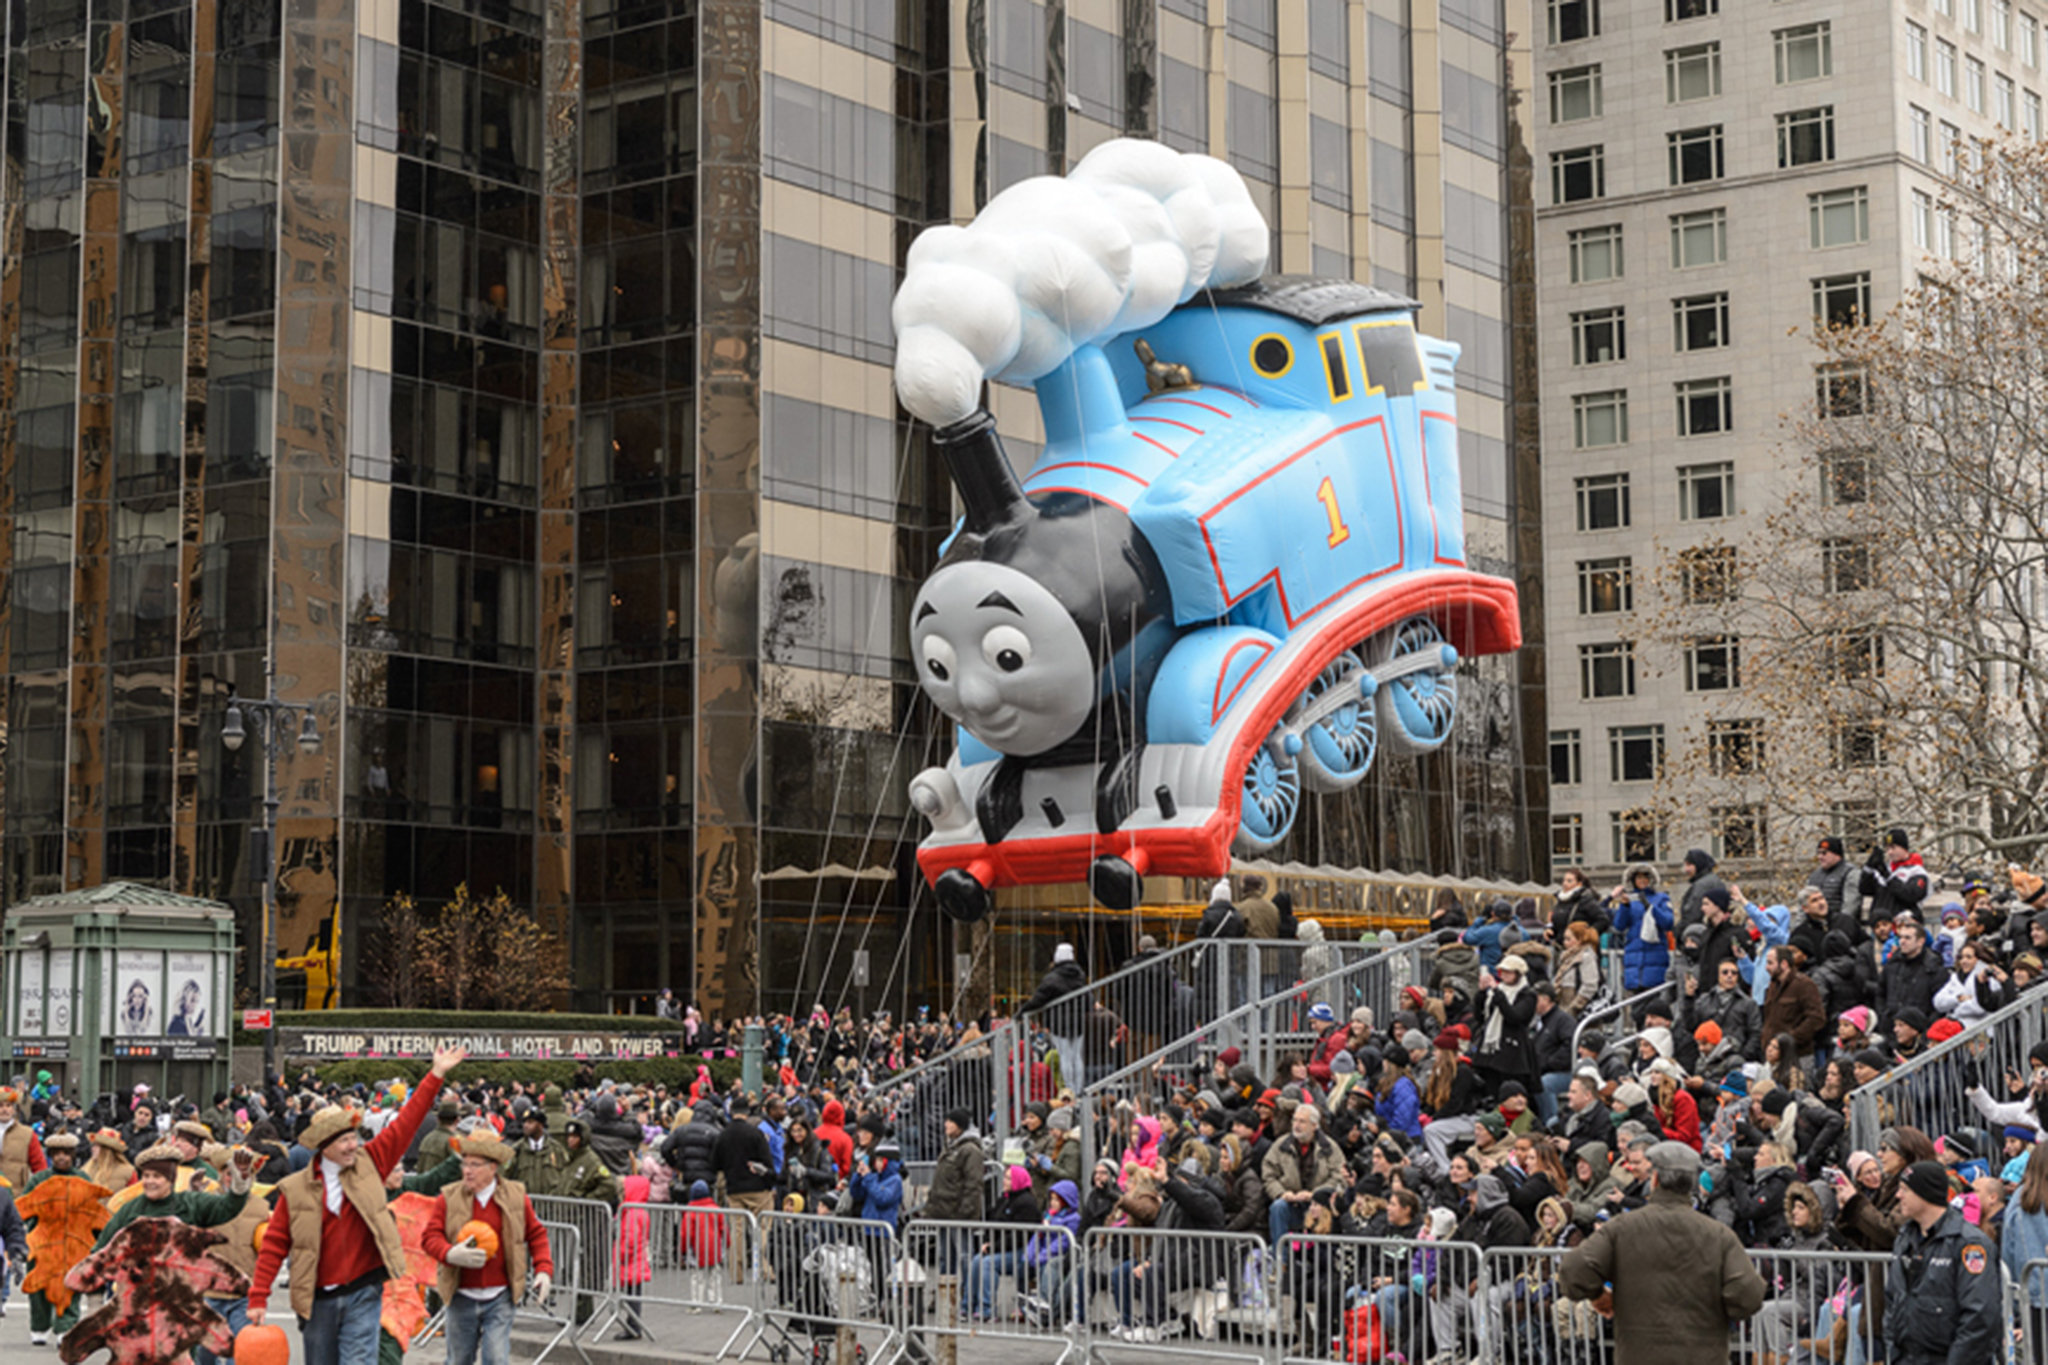 2014, Thomas the Tank Engine